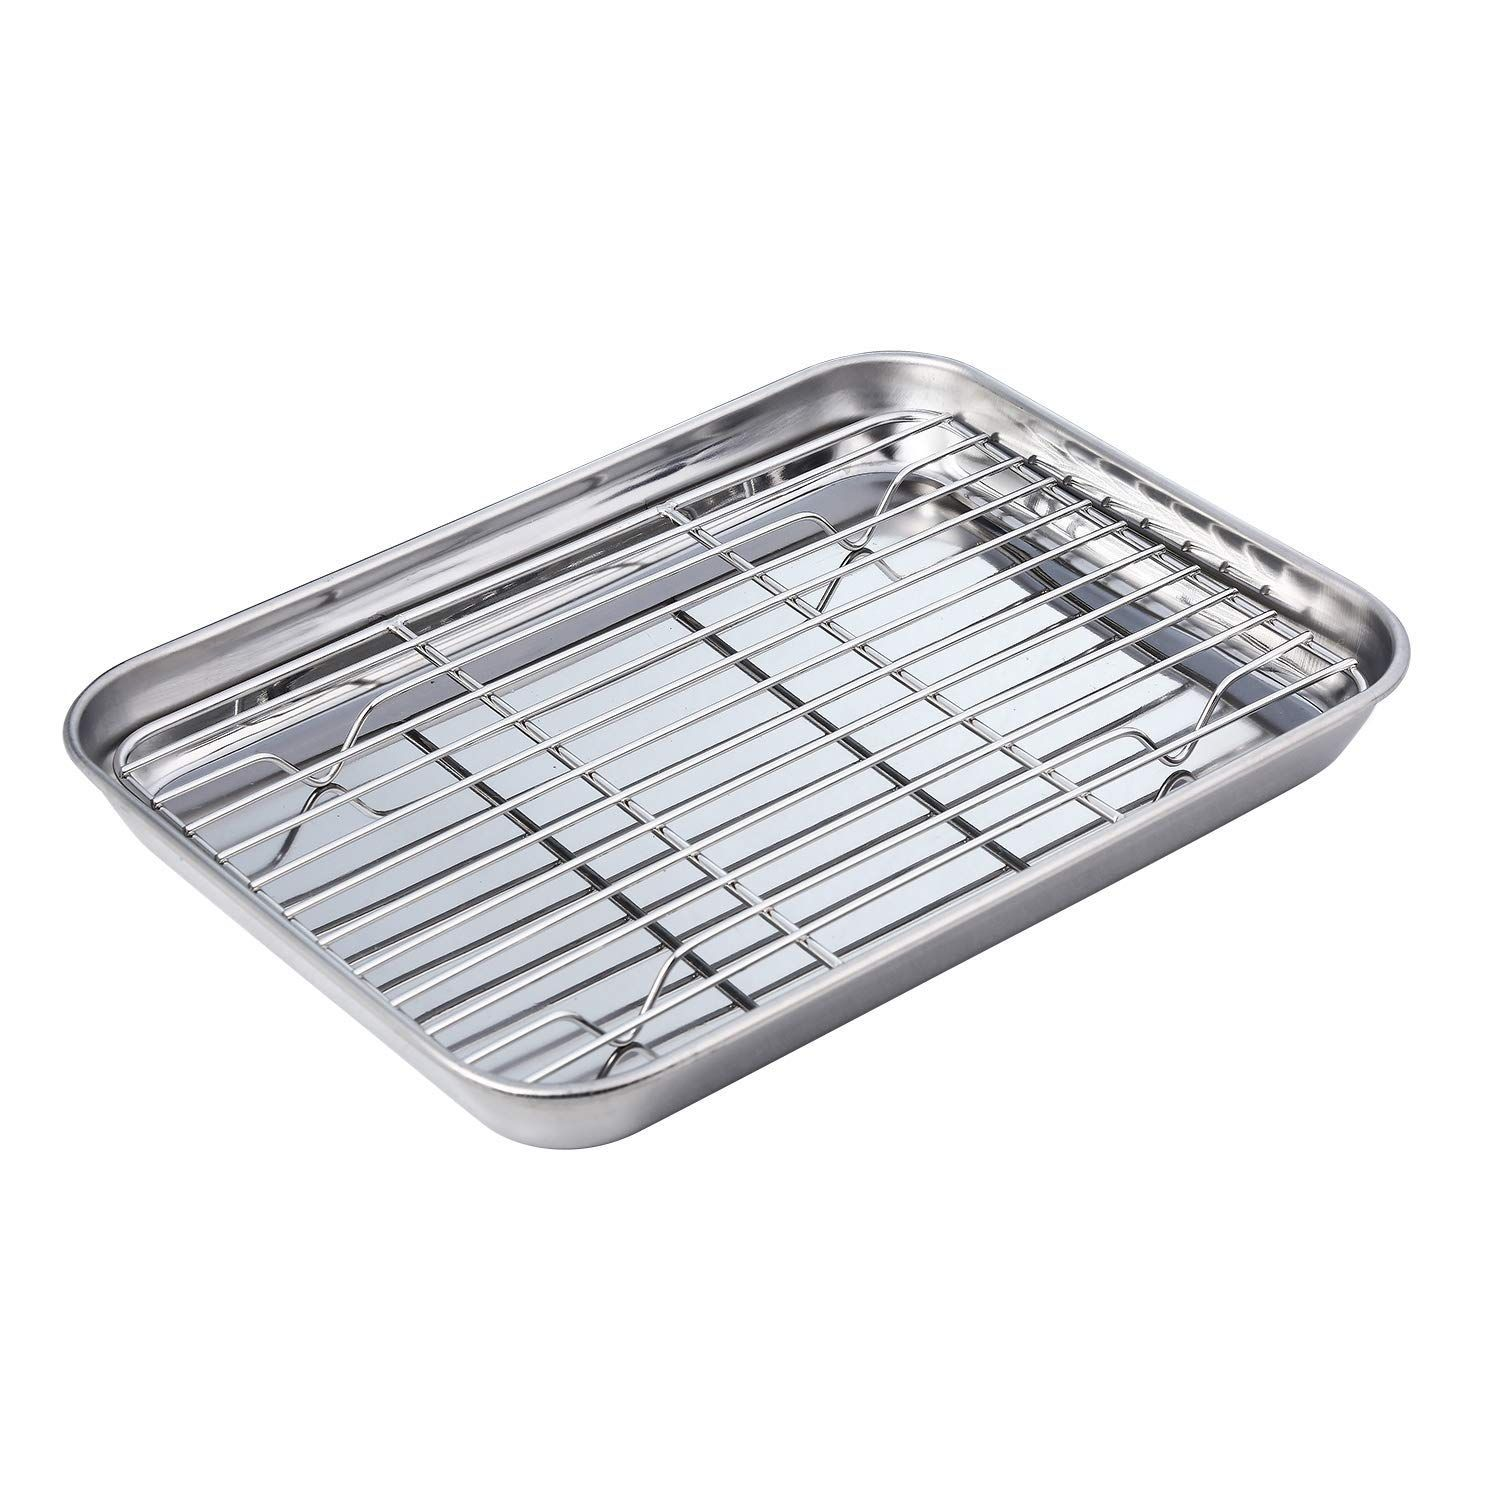 New Heavy Duty 1 4 Size Cooling Rack Cooling Racks Wire Pan Grade Commercial Grade Oven Safe Chrome 8 X 10 Inches Set Cooling Racks Oven Safe Oven Pan